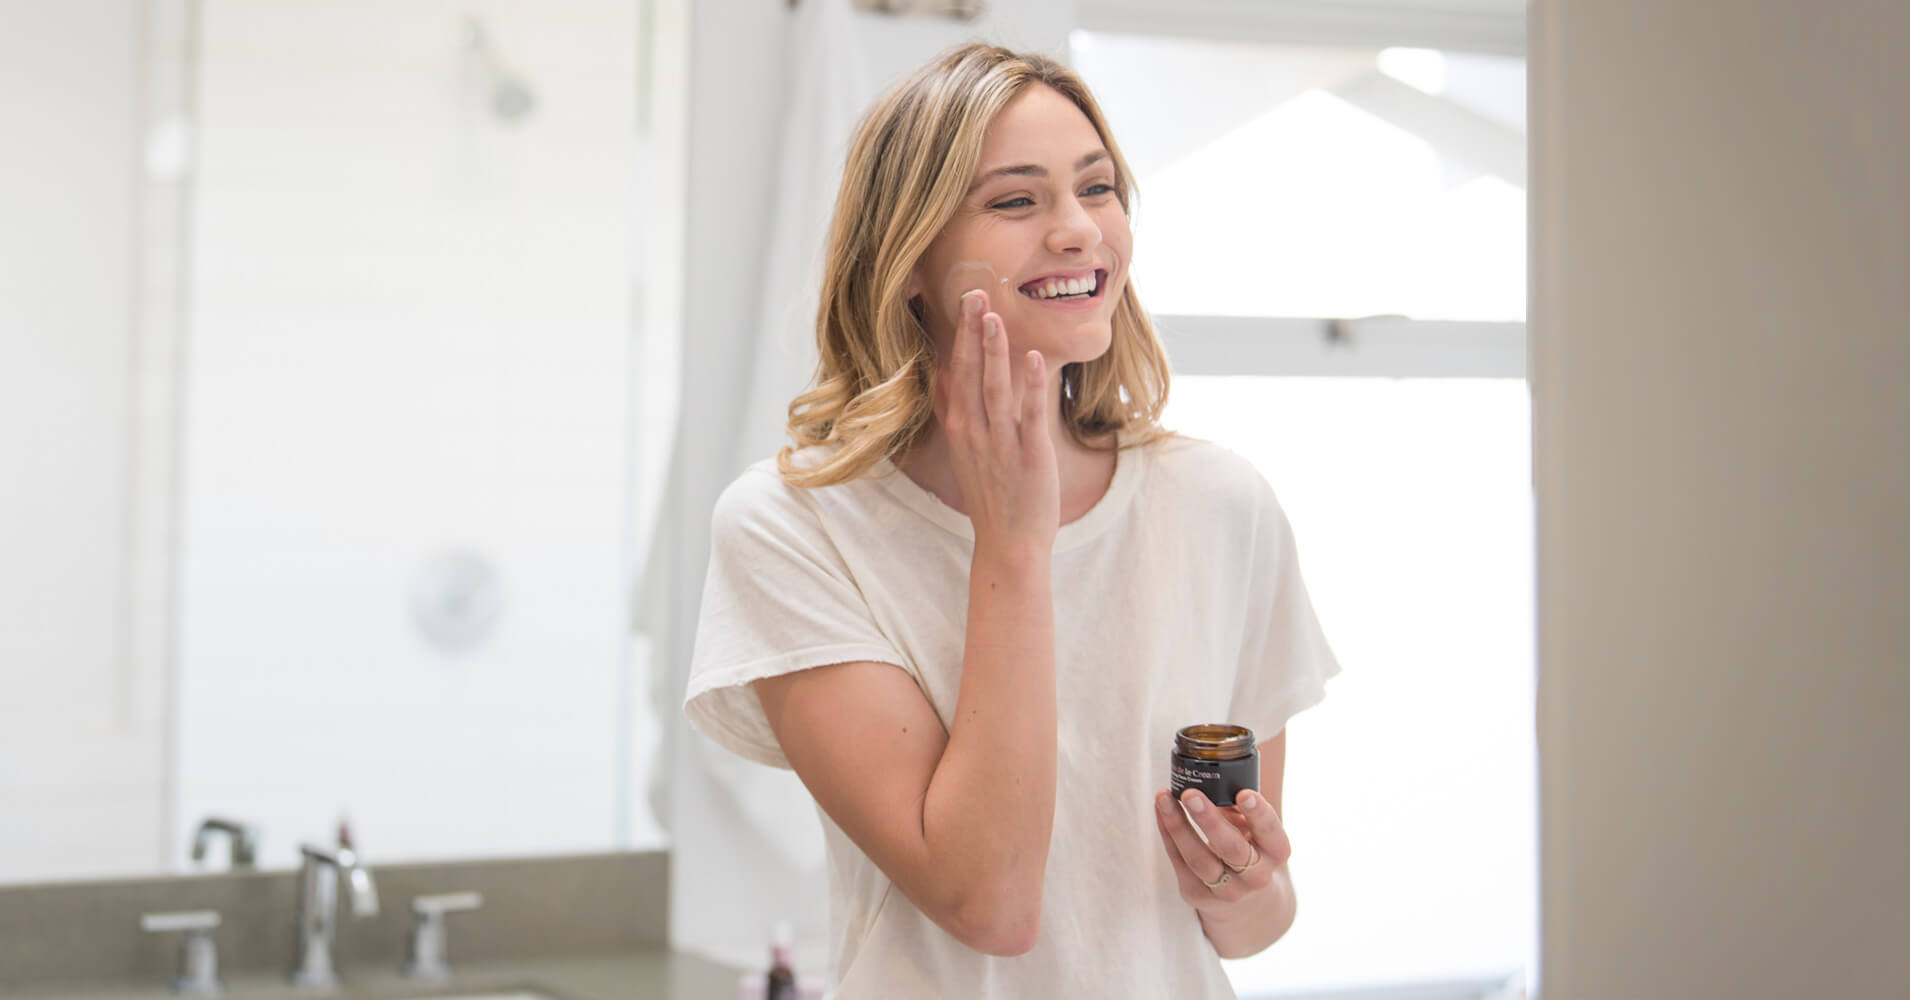 Easy skin care routine - woman in bathroom